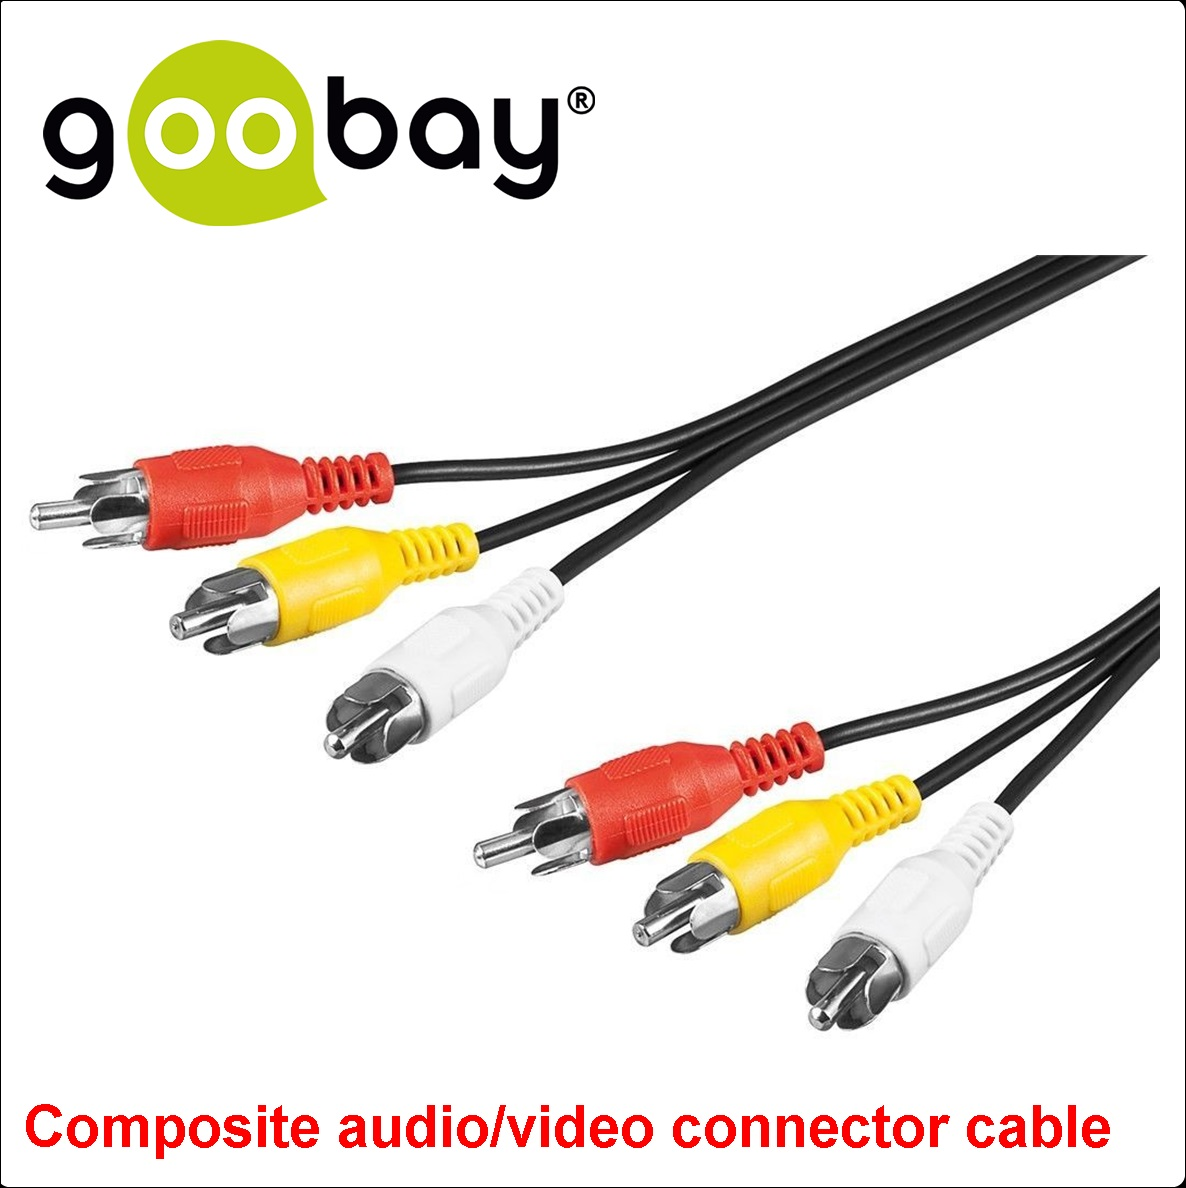 3 RCA male to  3 RCA male 3.0m GOOBAY 50382